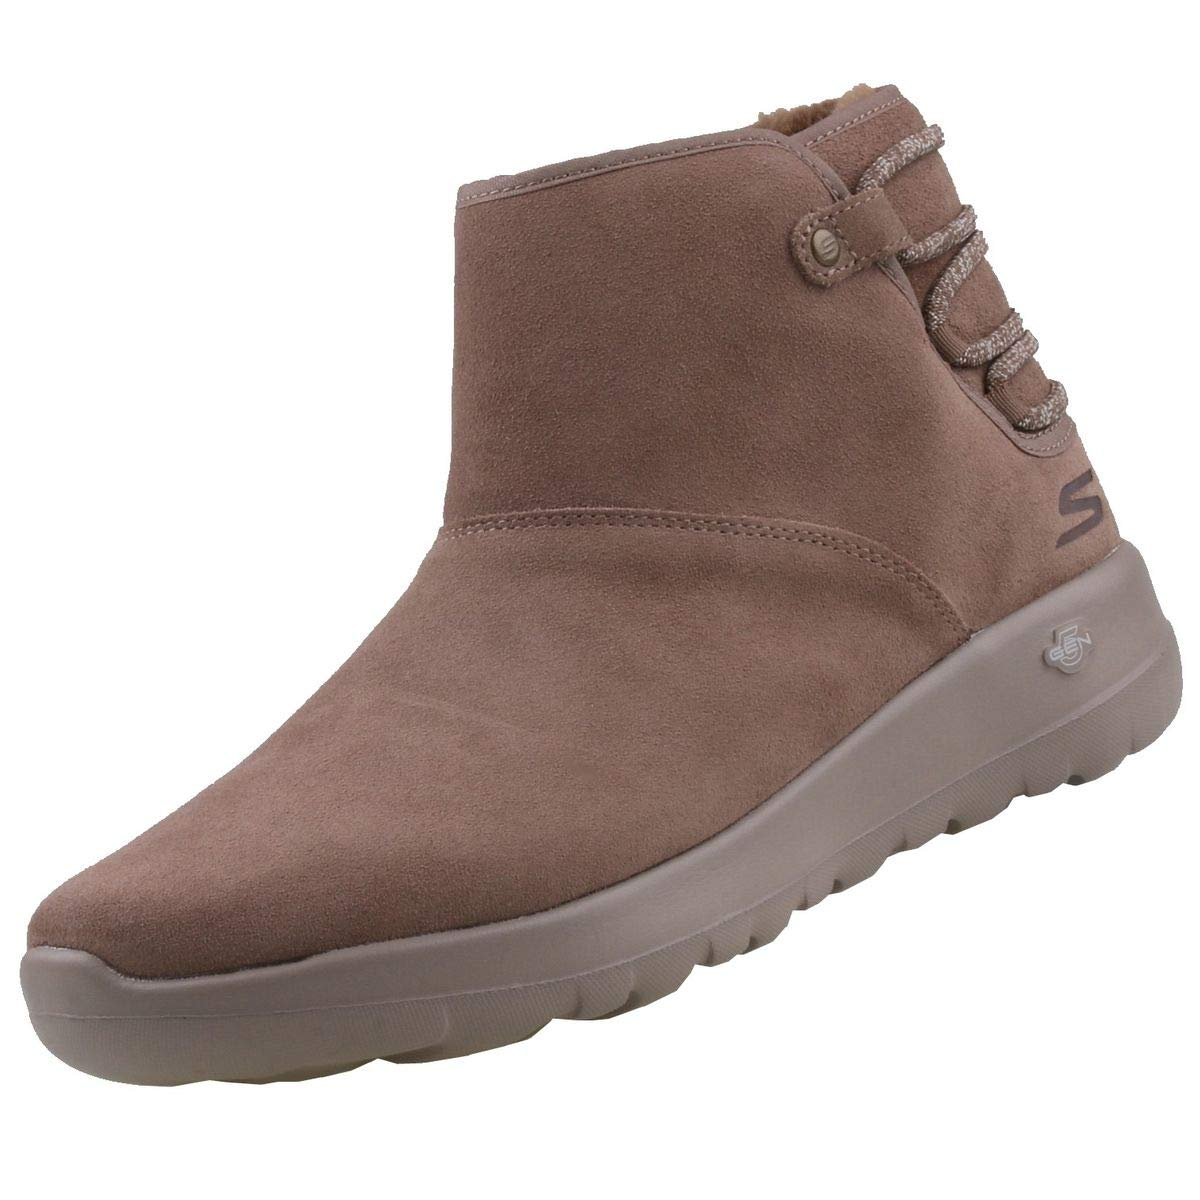 Skechers On The Go Joy Damen 15502 Dark Taupe DKTP Winterschuhe